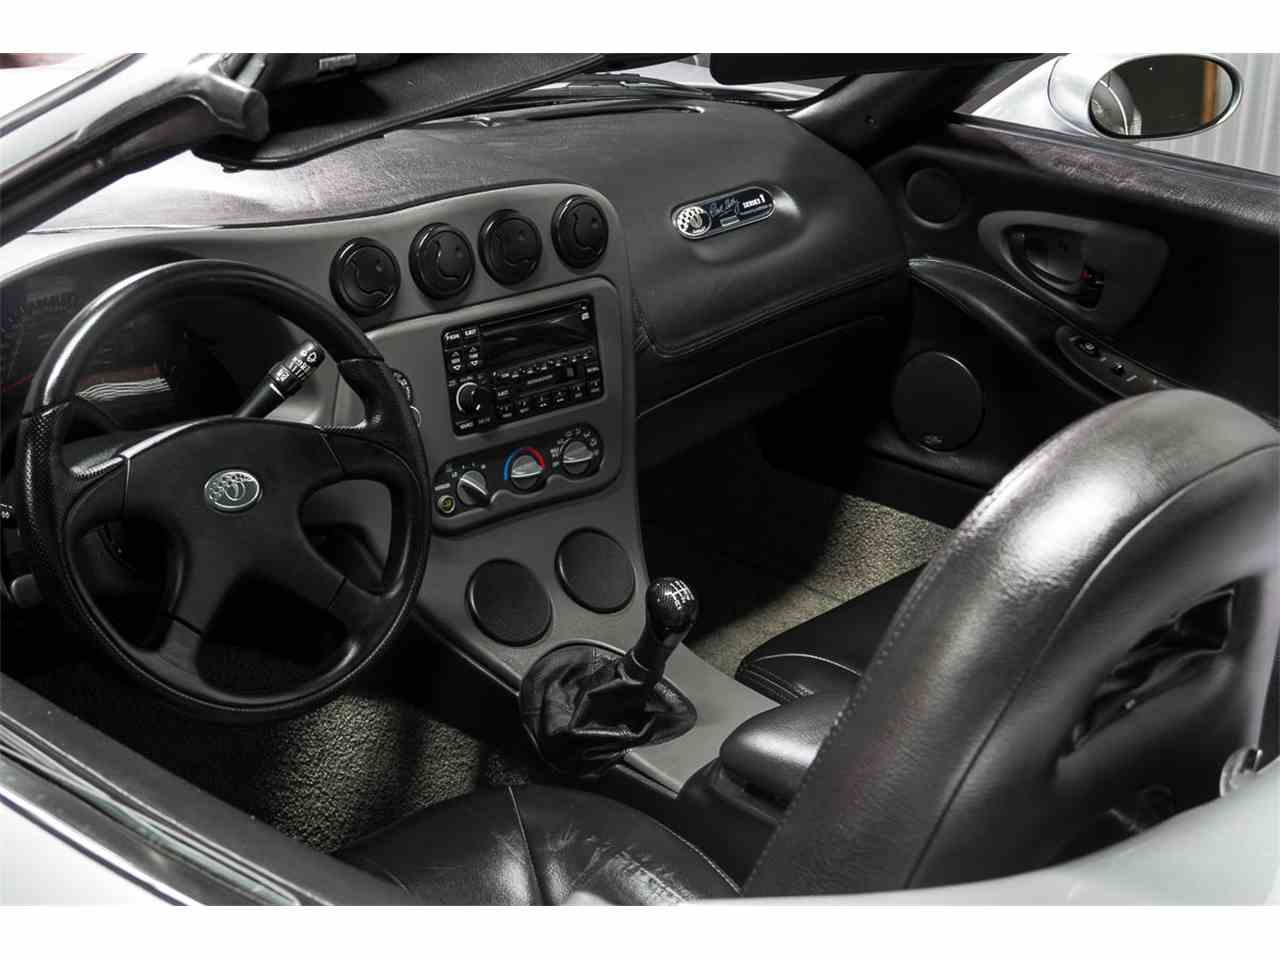 Large Picture of '99 Shelby Series 1 - $109,900.00 Offered by a Private Seller - M5H1